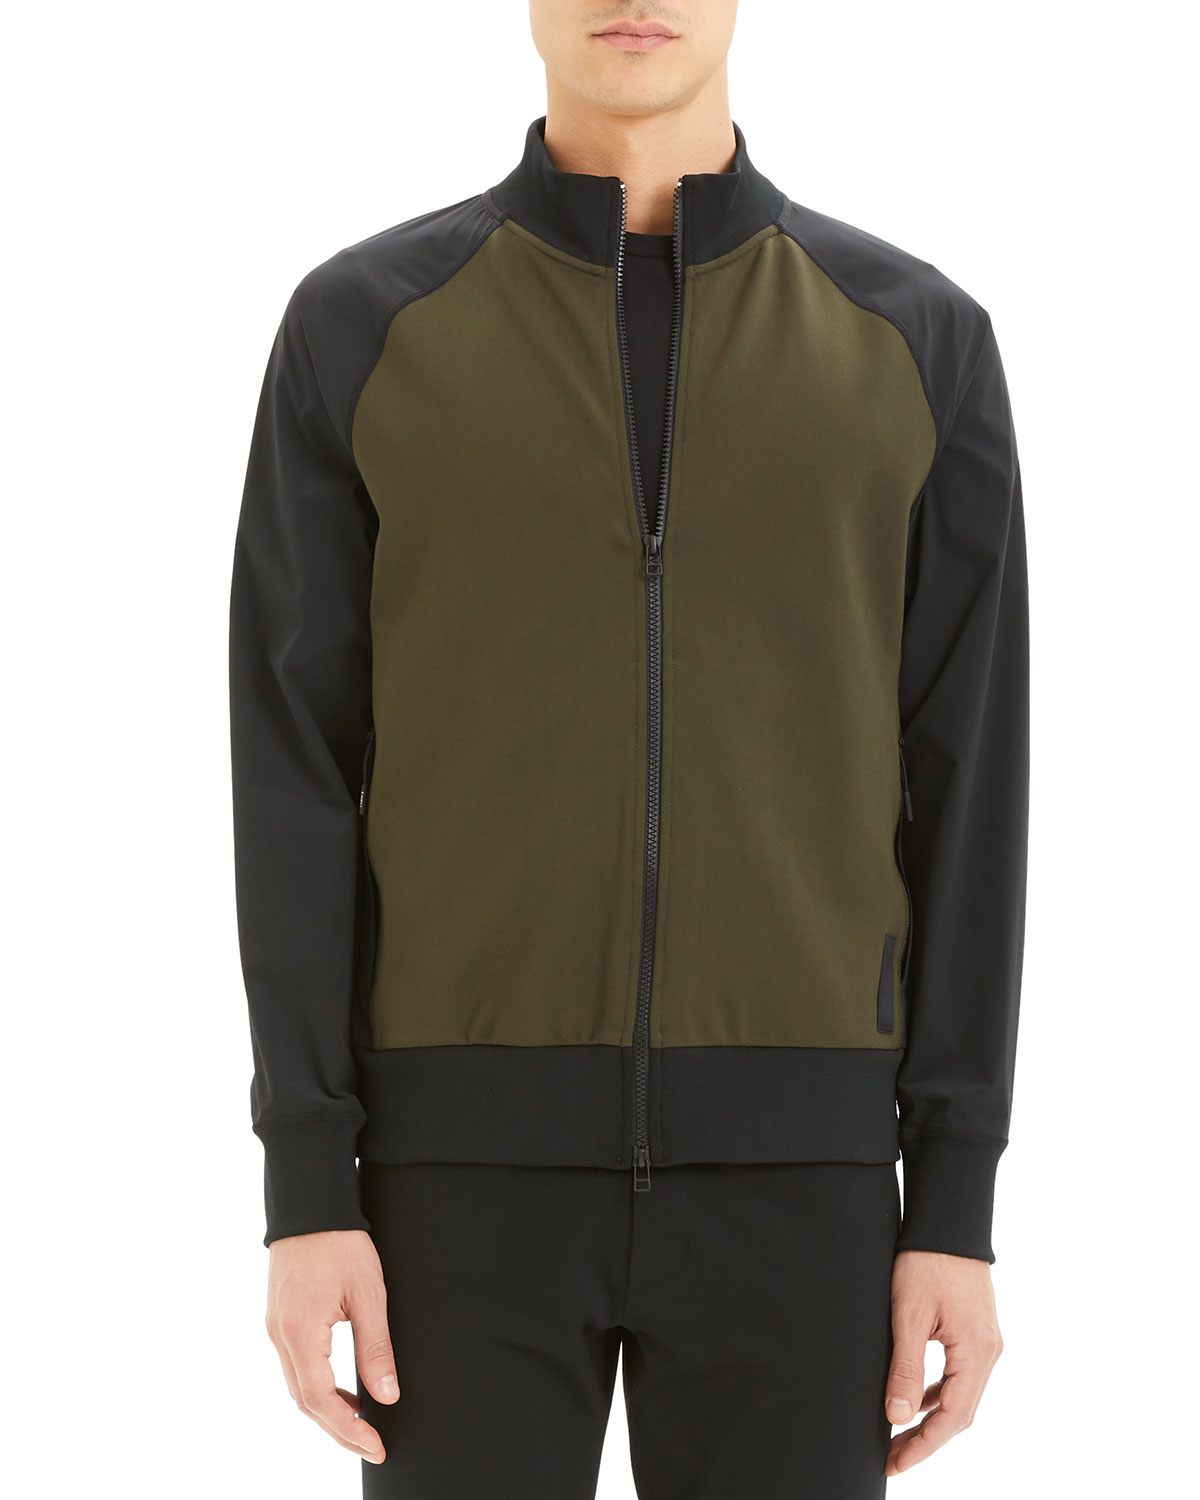 Theory Men's Varro Endurance Two-Tone Active Jacket